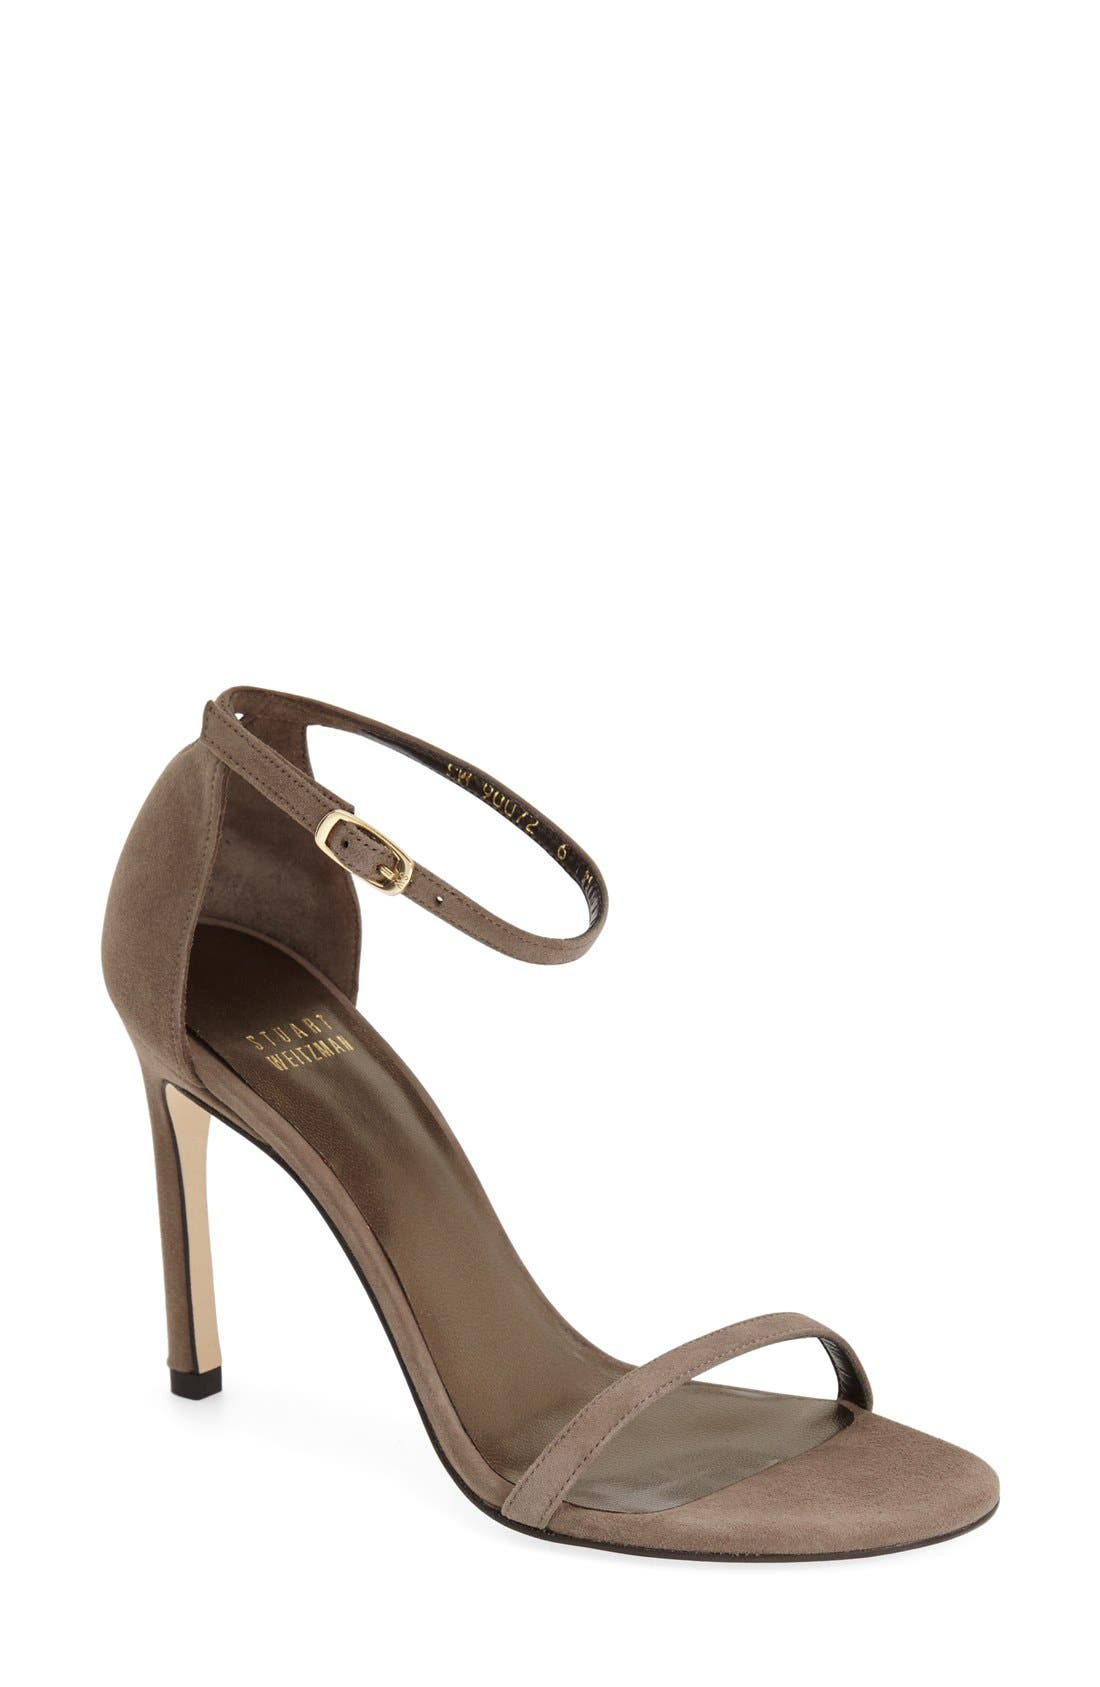 Nudistsong Ankle Strap Sandal,                             Main thumbnail 19, color,